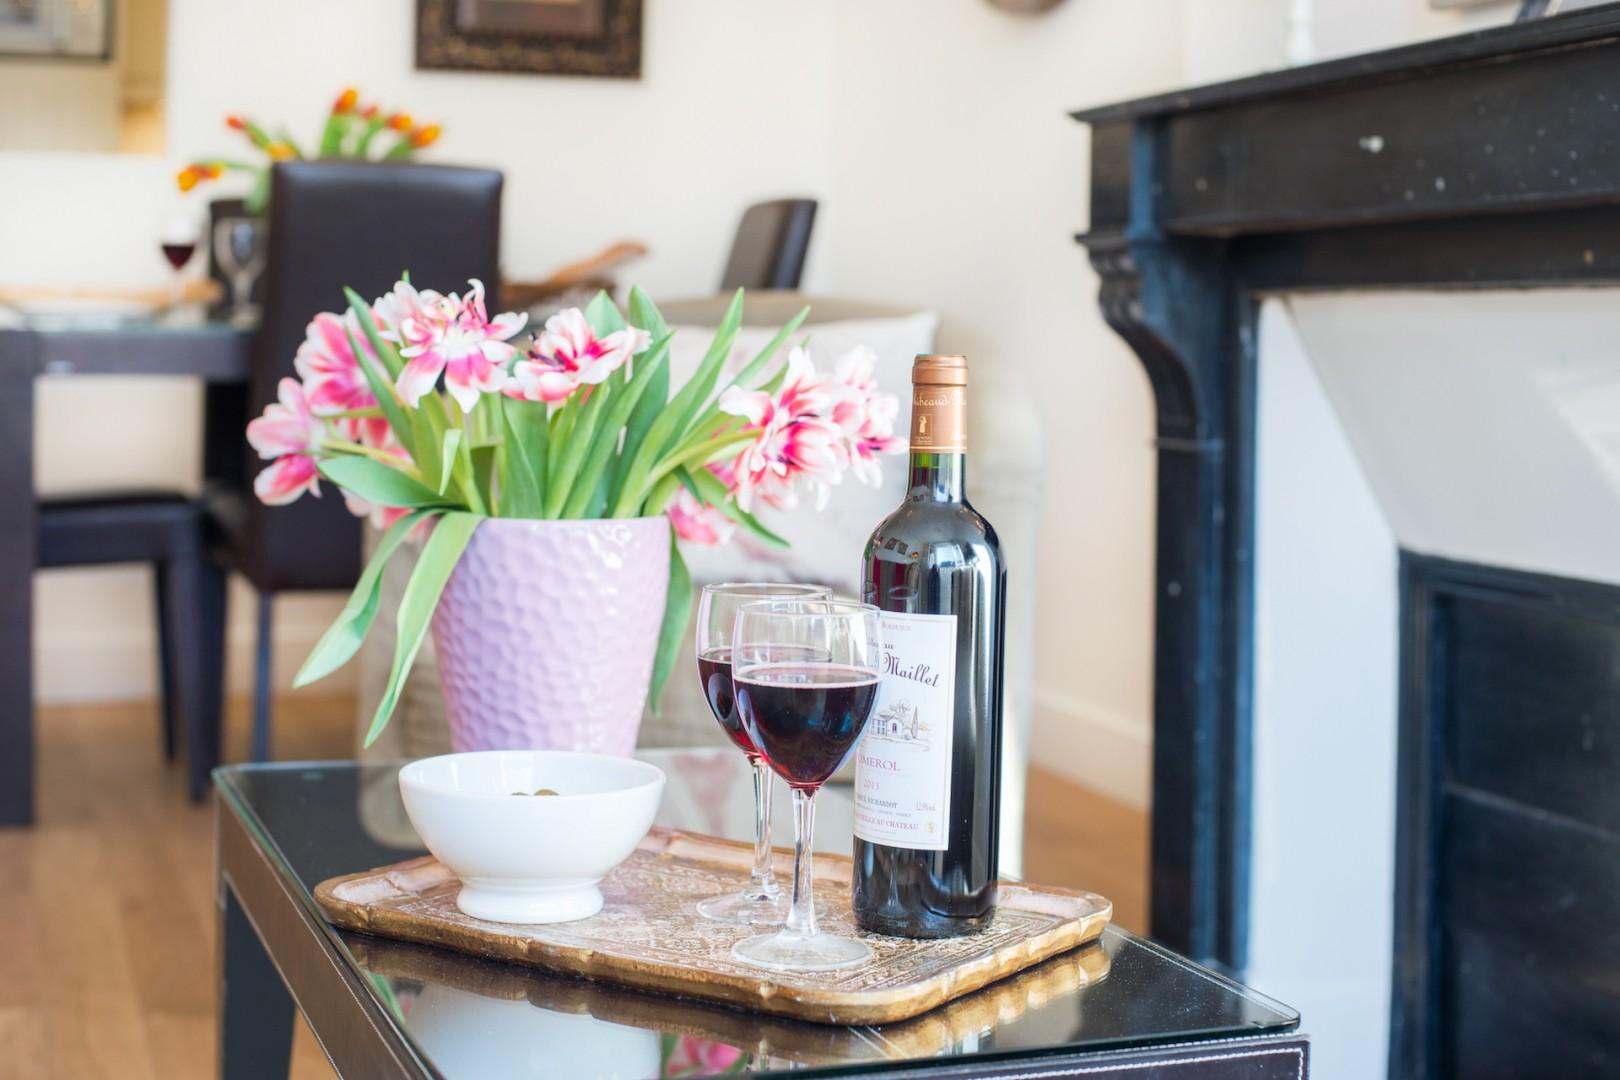 Relax with a glass of French wine by the fireplace.